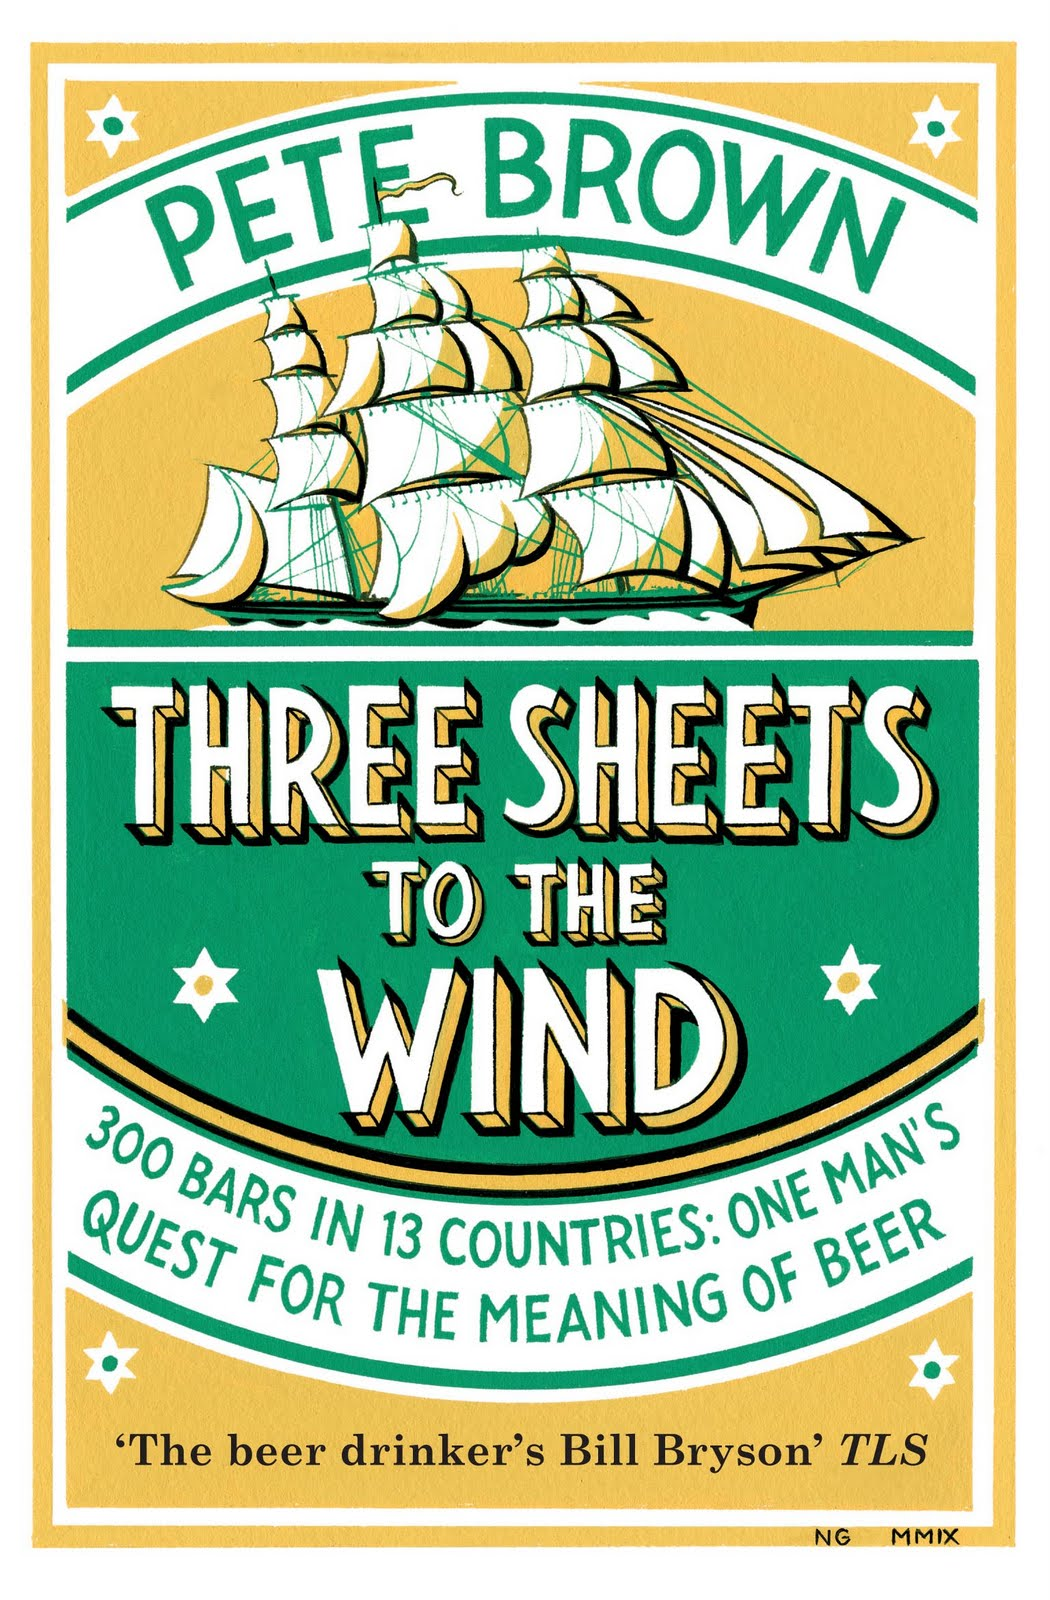 3 Sheets To The Wind Tv Show three sheets to the wind - pete brown